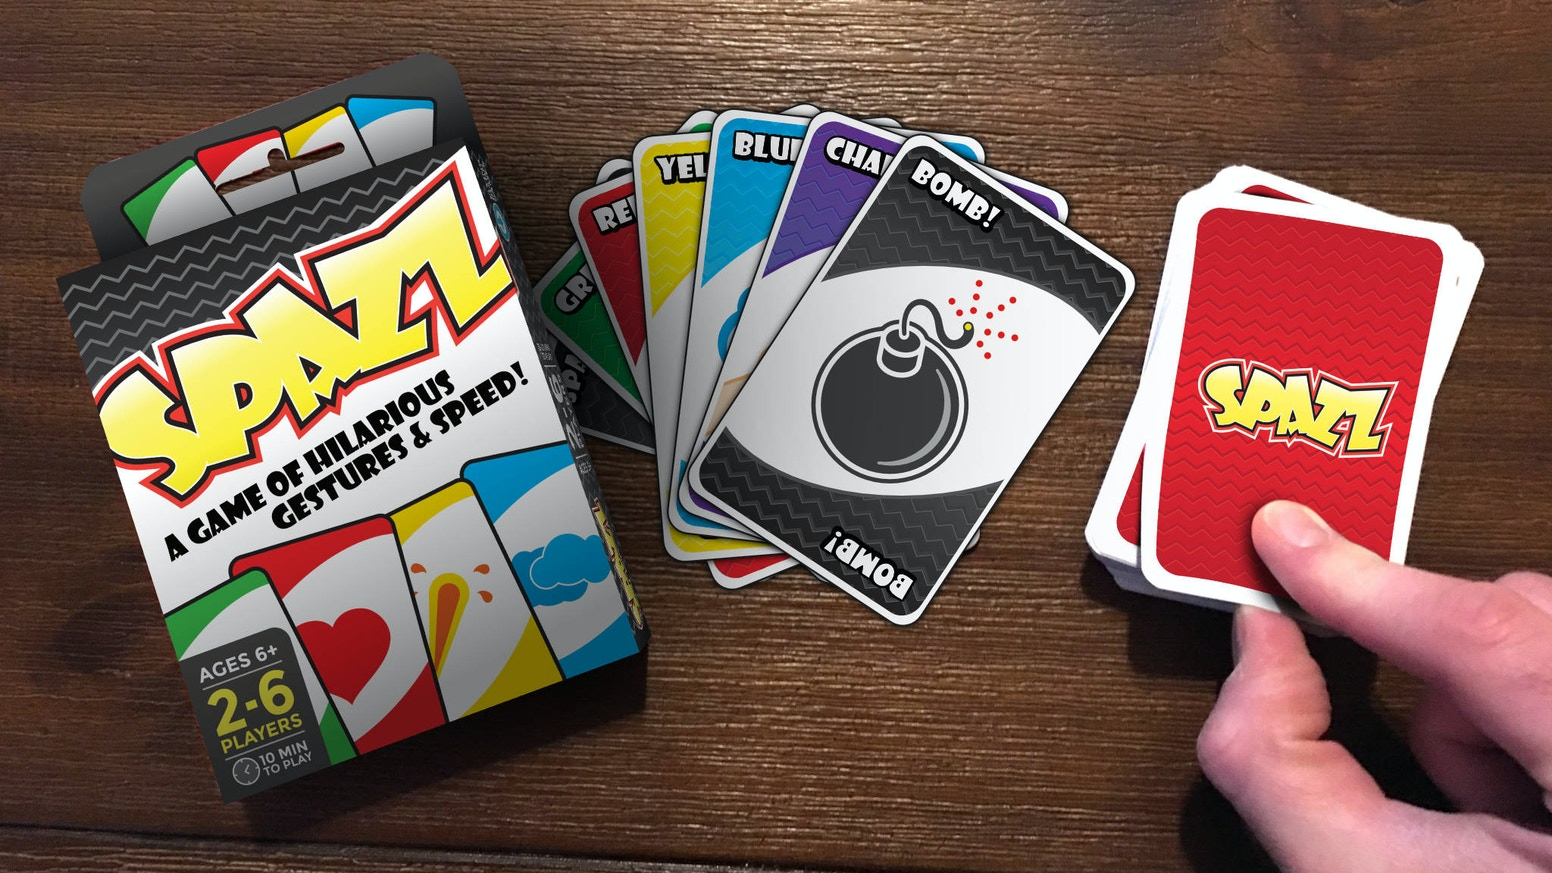 Spazz is a card game that combines speed, hilarious gestures, and your silly side for 2-6 players, ages 6+.